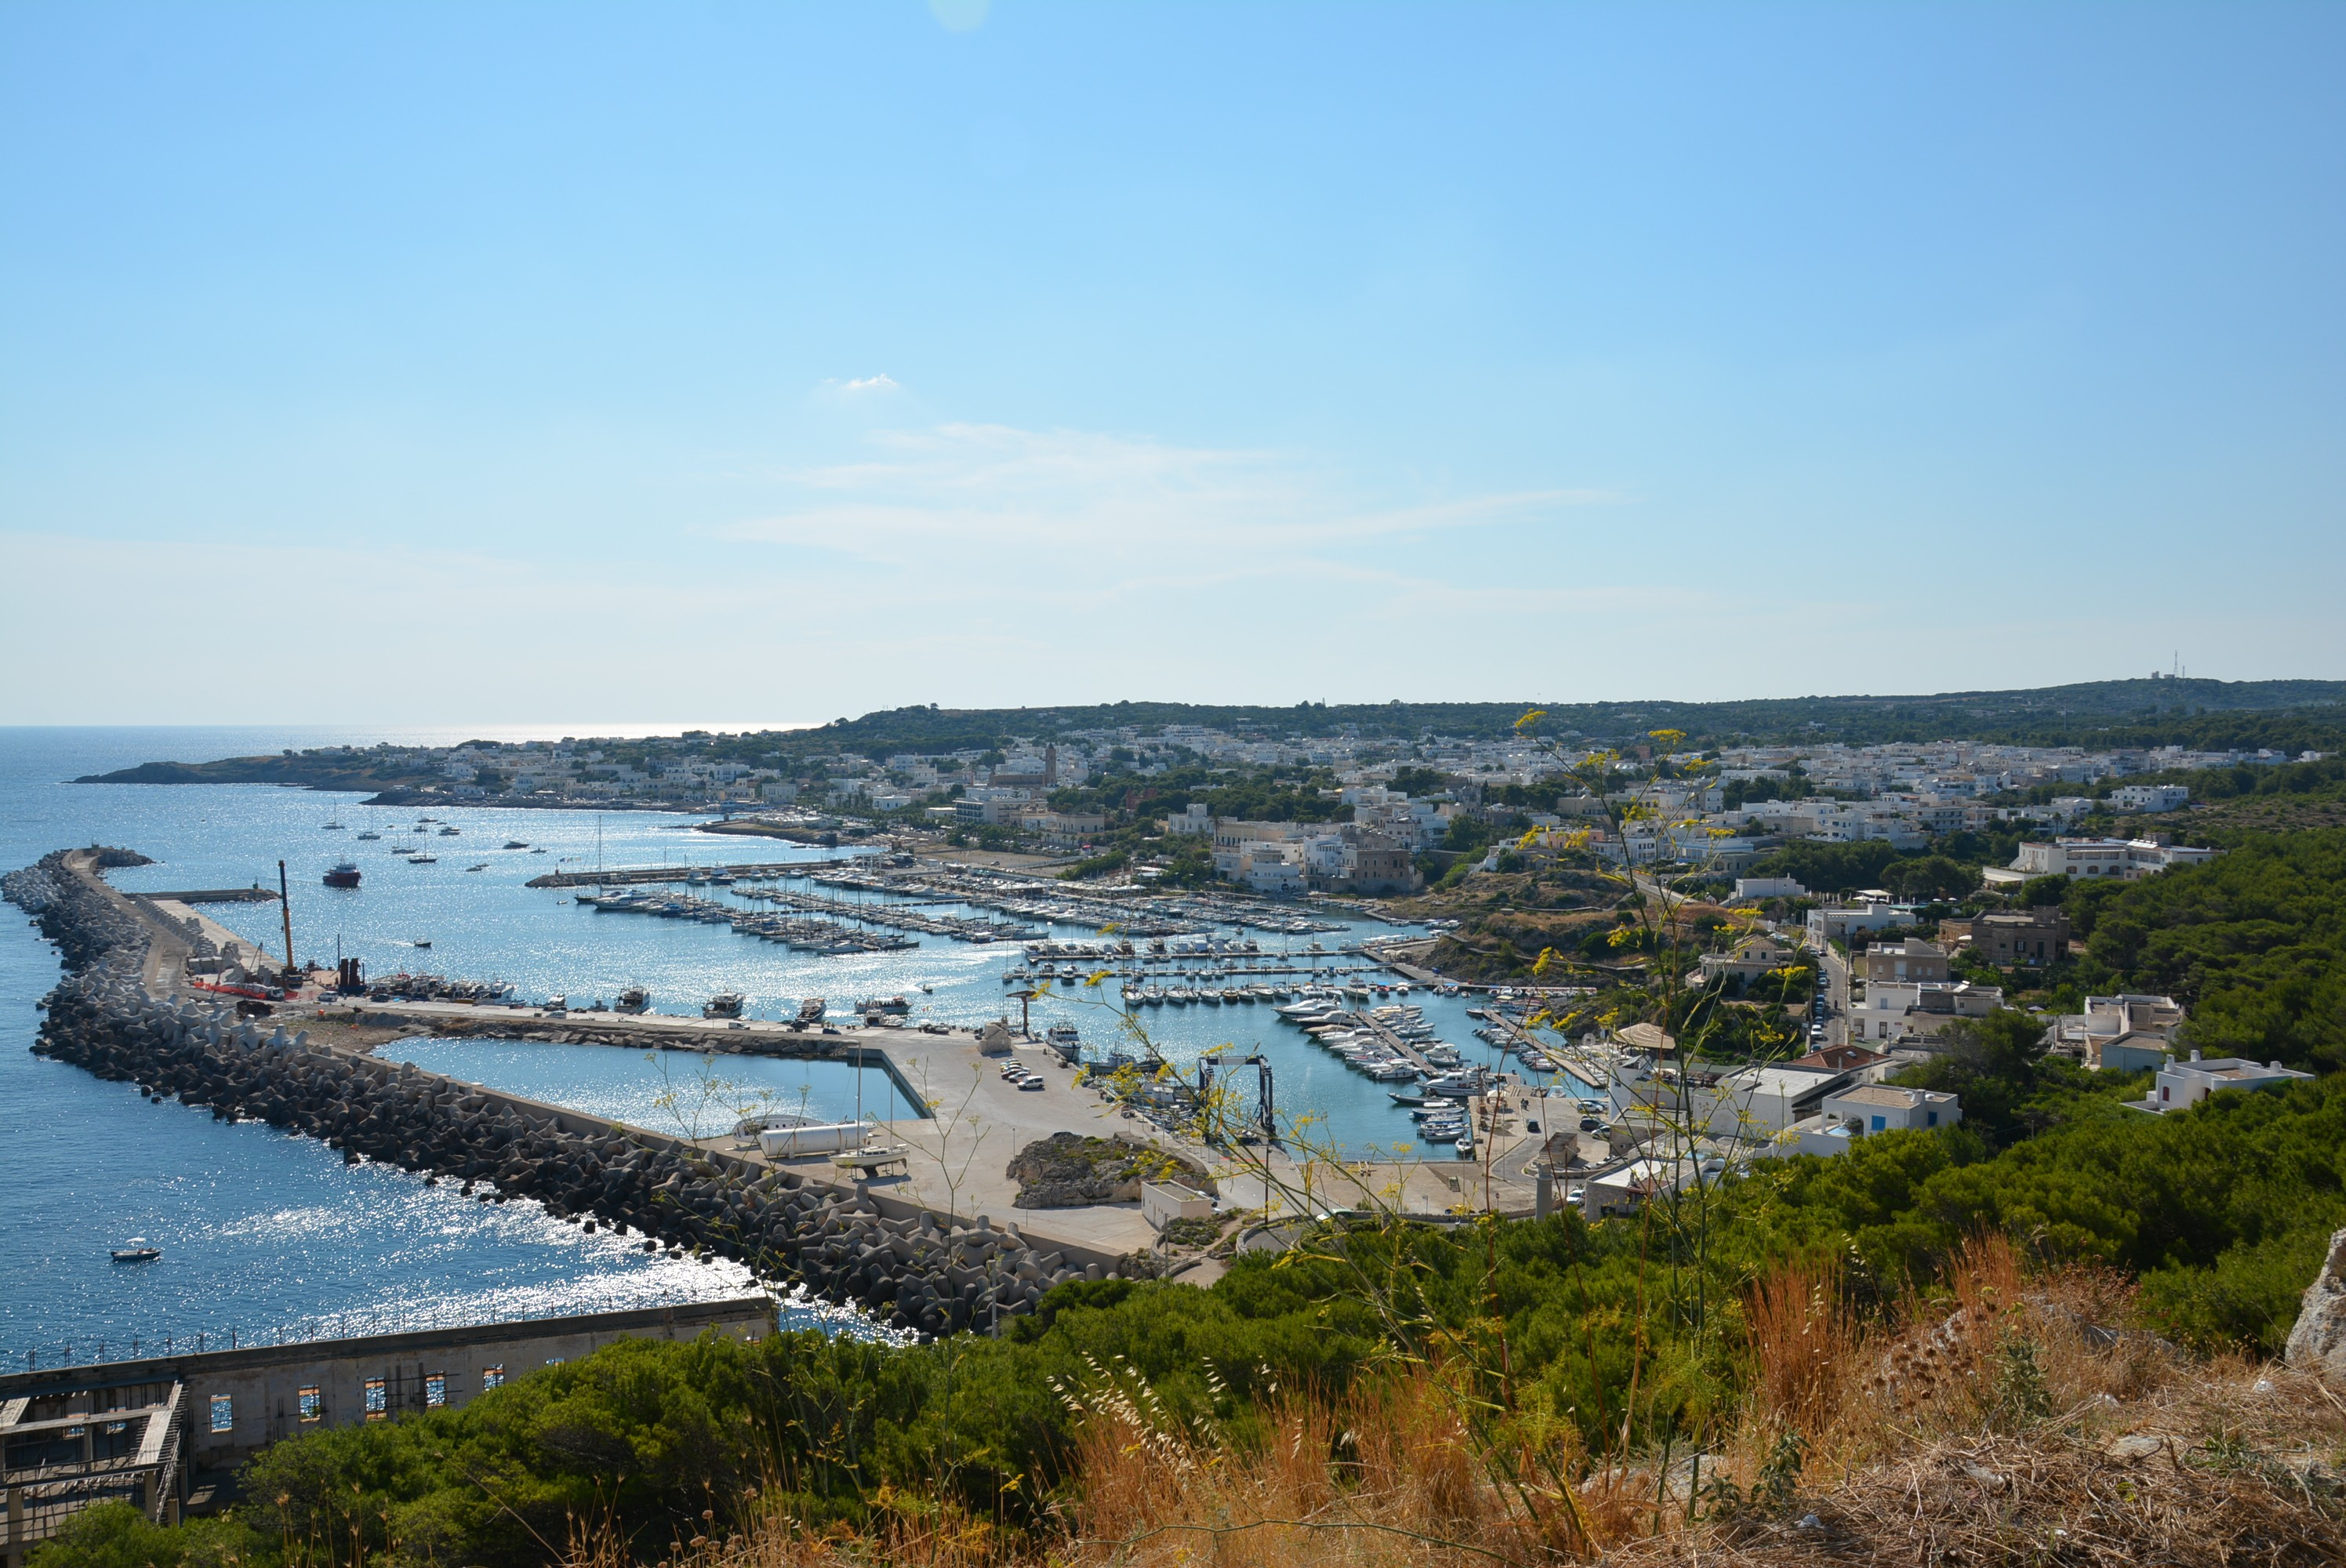 Leuca: the origins and places to see